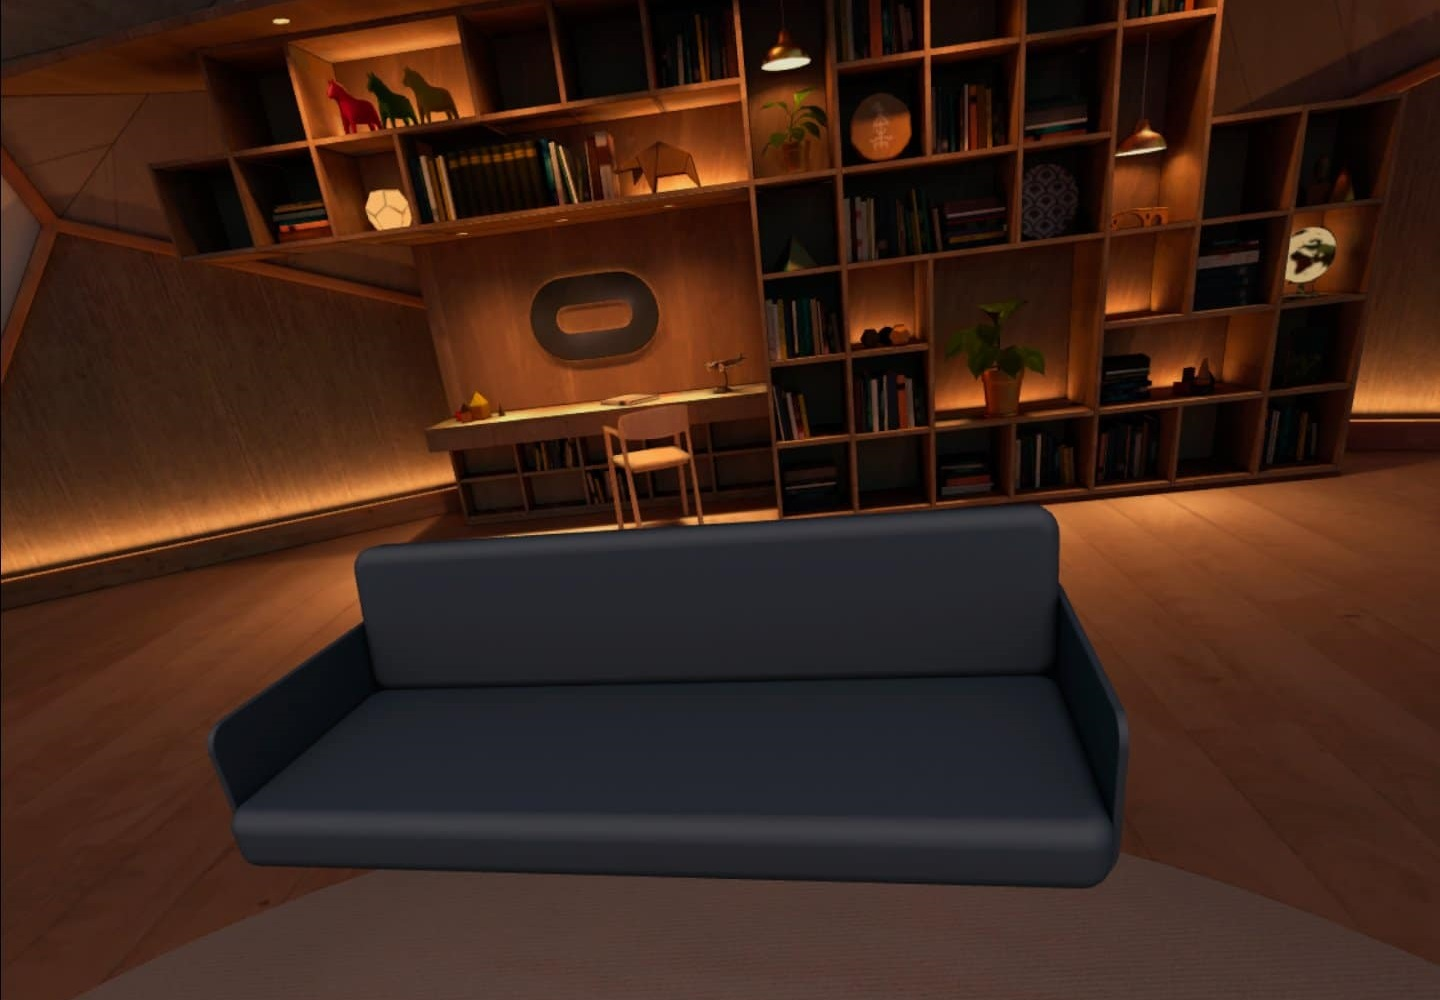 With the help of the new feature of Oculus Quest, you can mark your real couch in VR